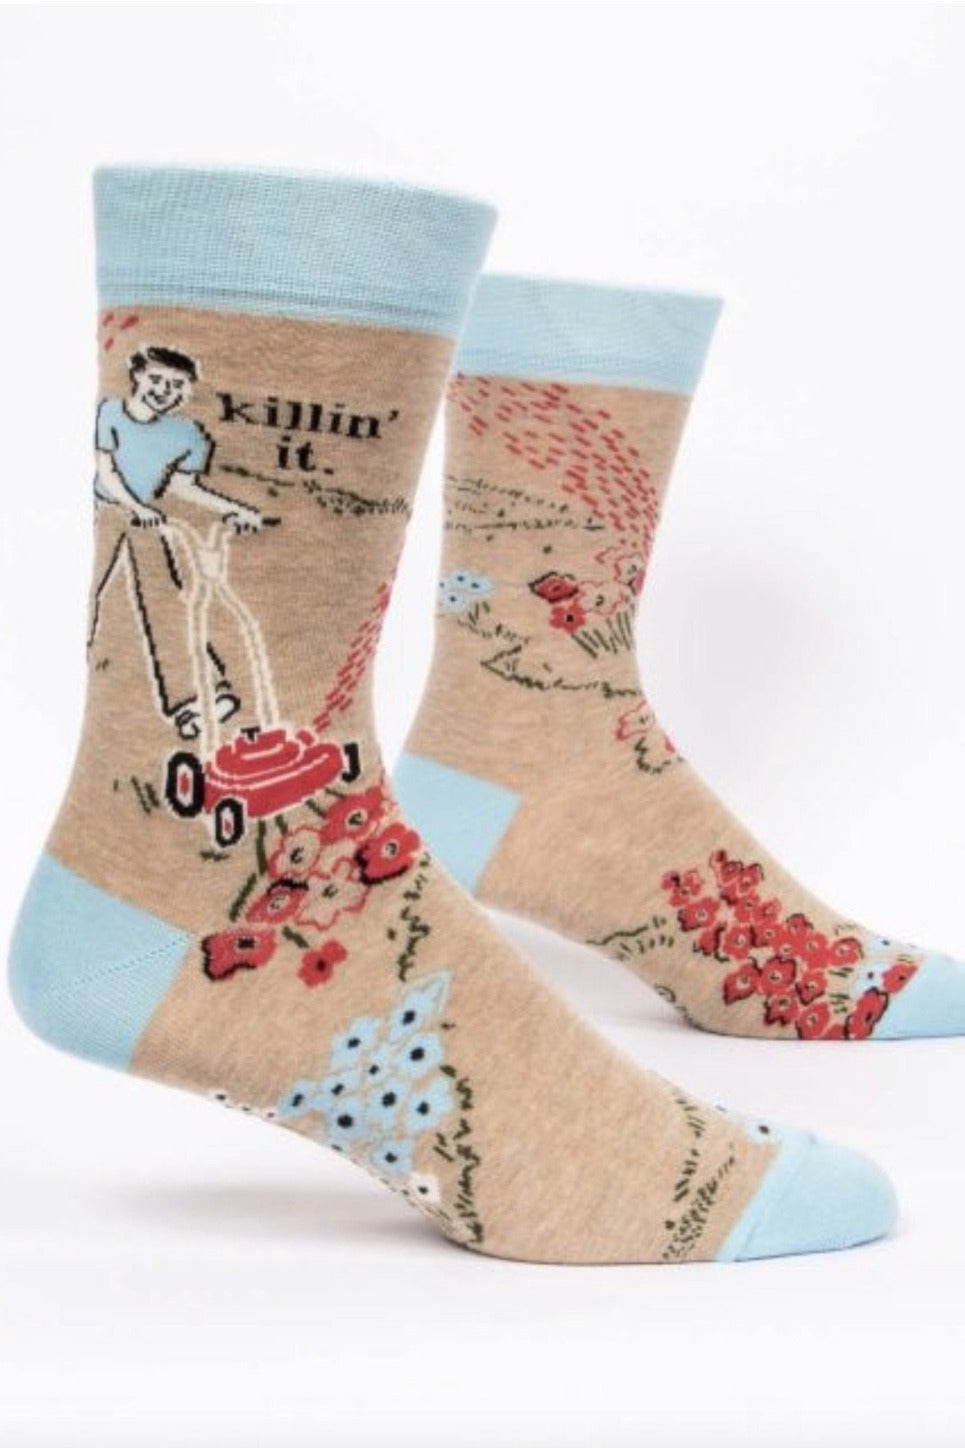 Killin' It Men's Sock